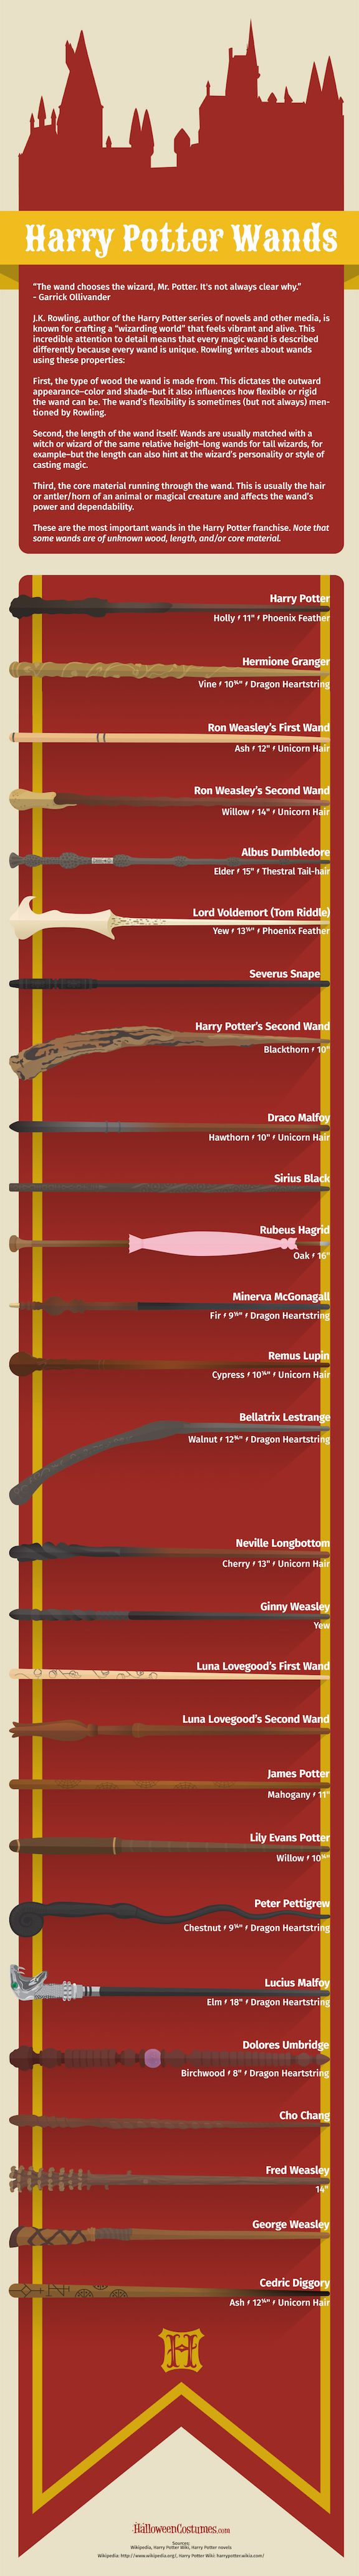 Everything you need to know about *Wanding* World.  I like Rubeus Hagrid's pink oak model myself - Potter Wands: INFOGRAPHIC